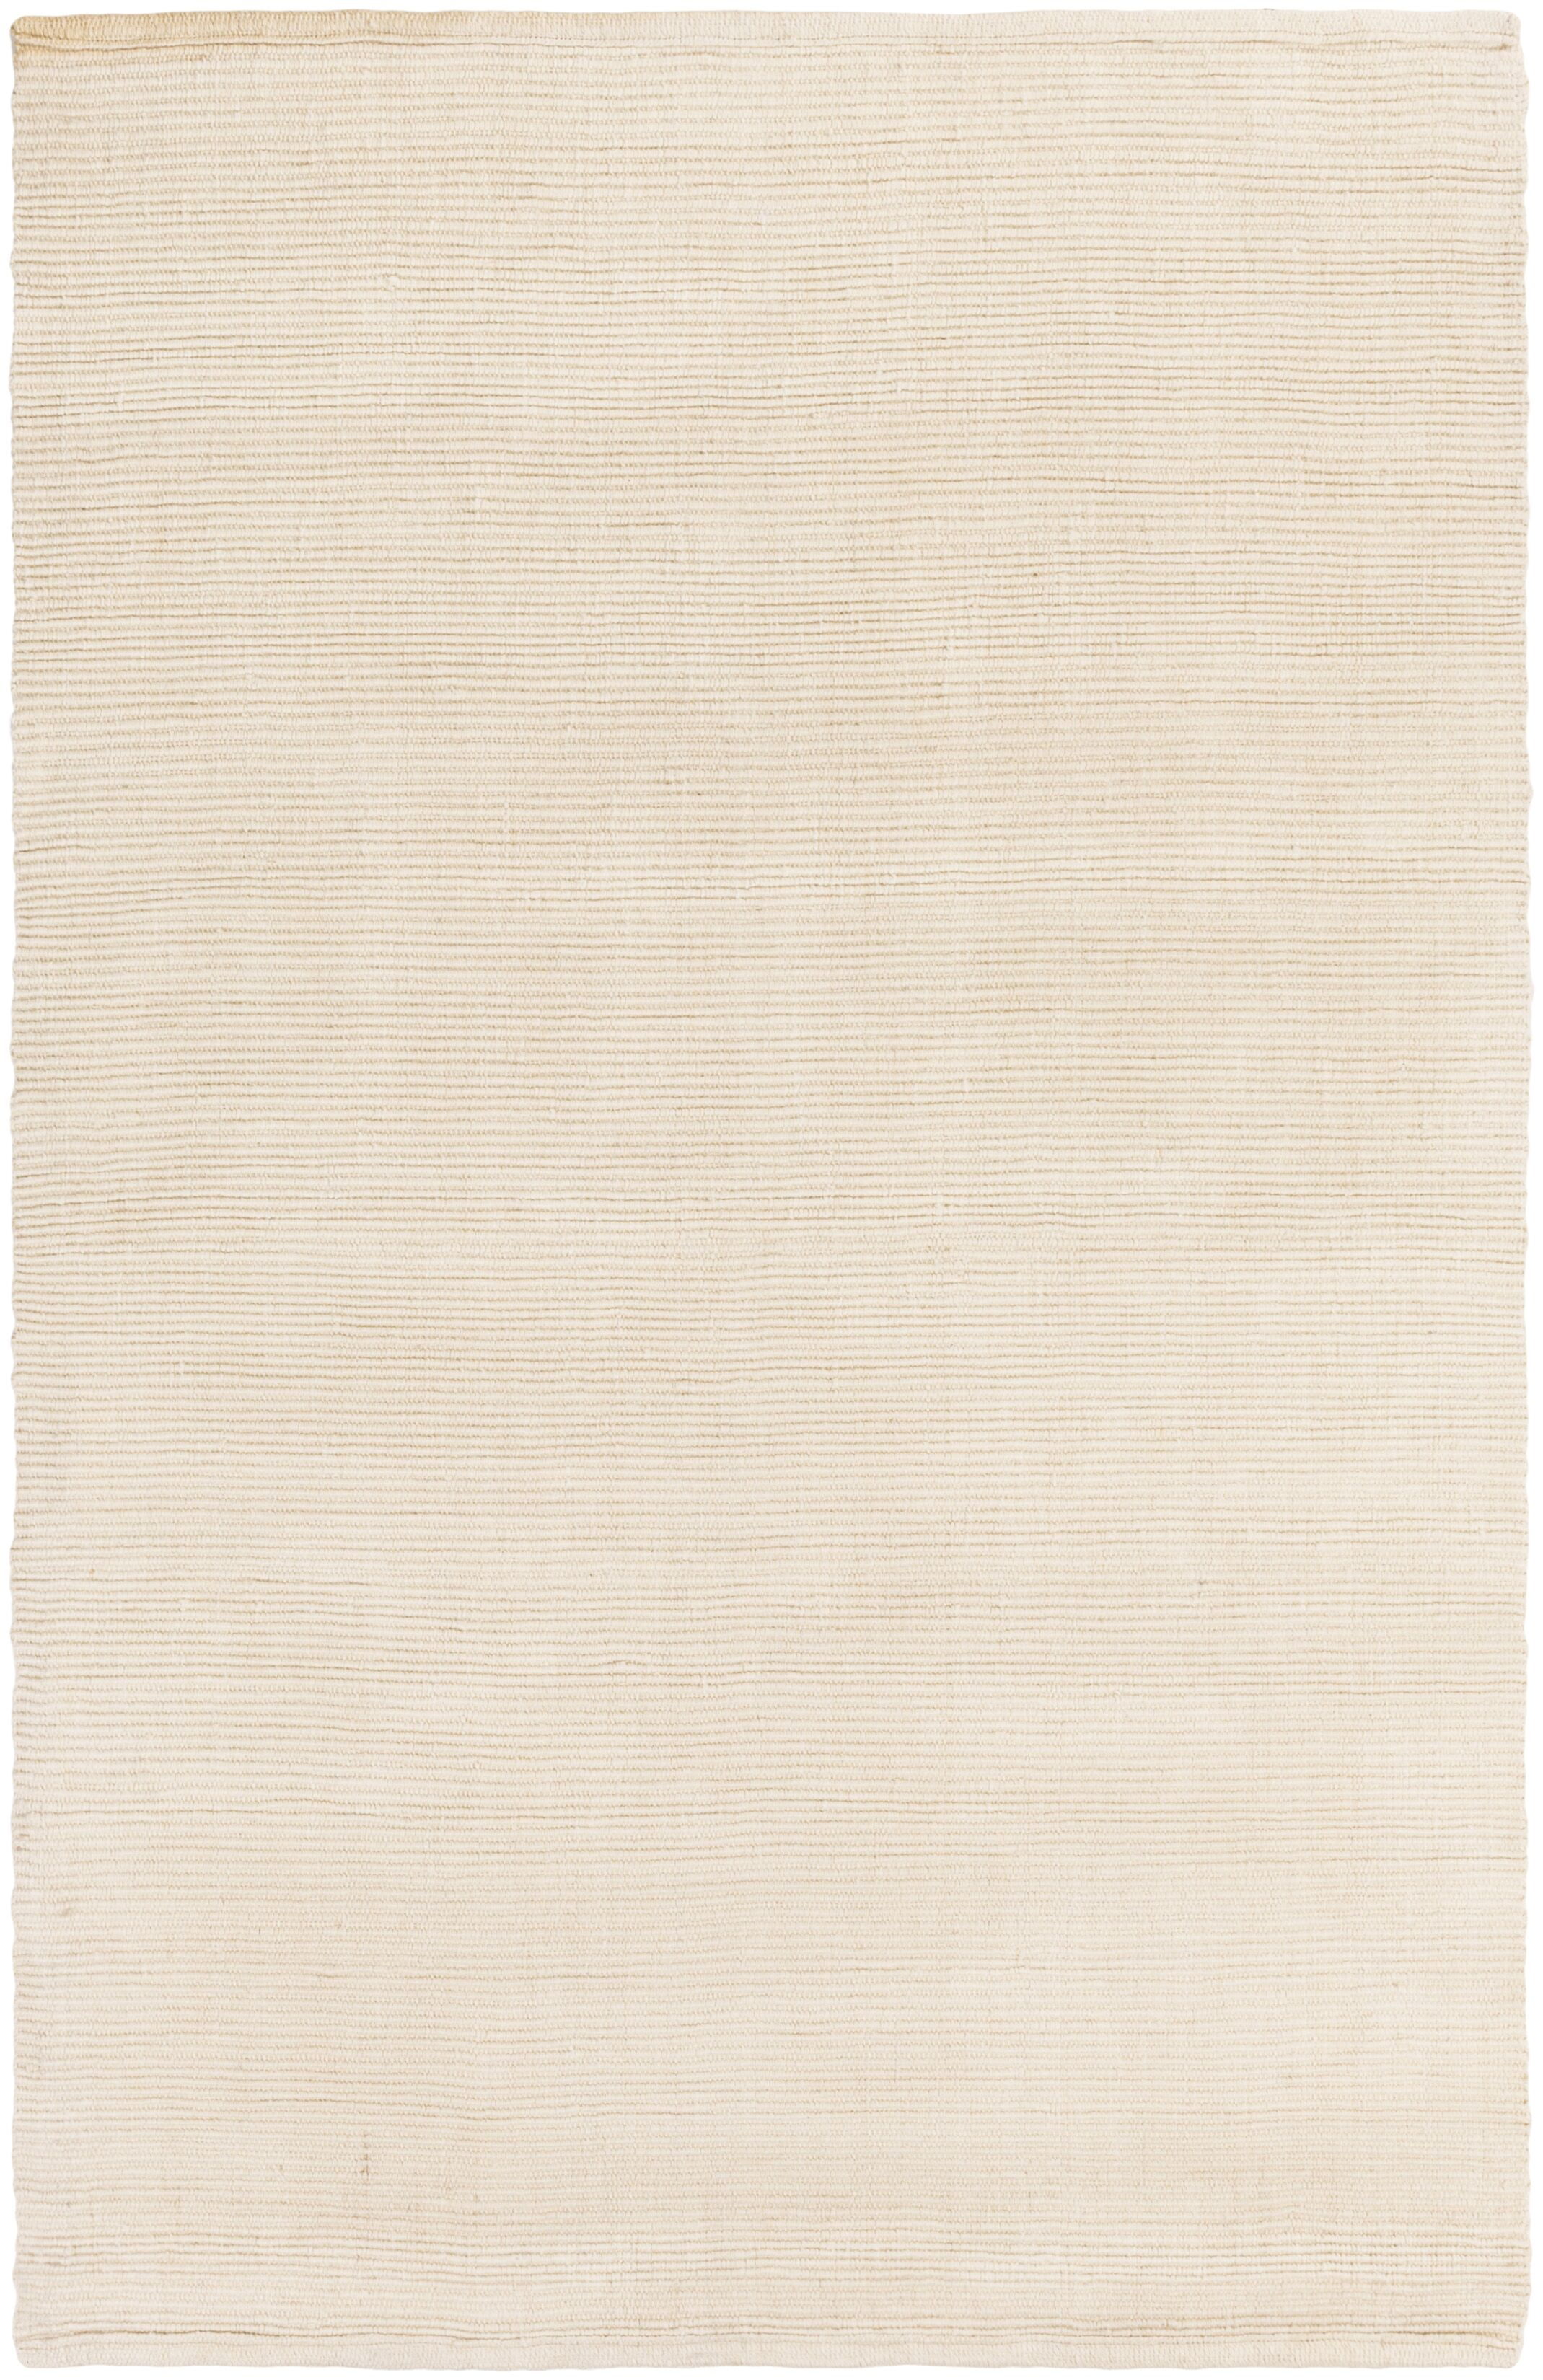 Yother Hand-Woven Ivory Area Rug Rug Size: Runner 2'3